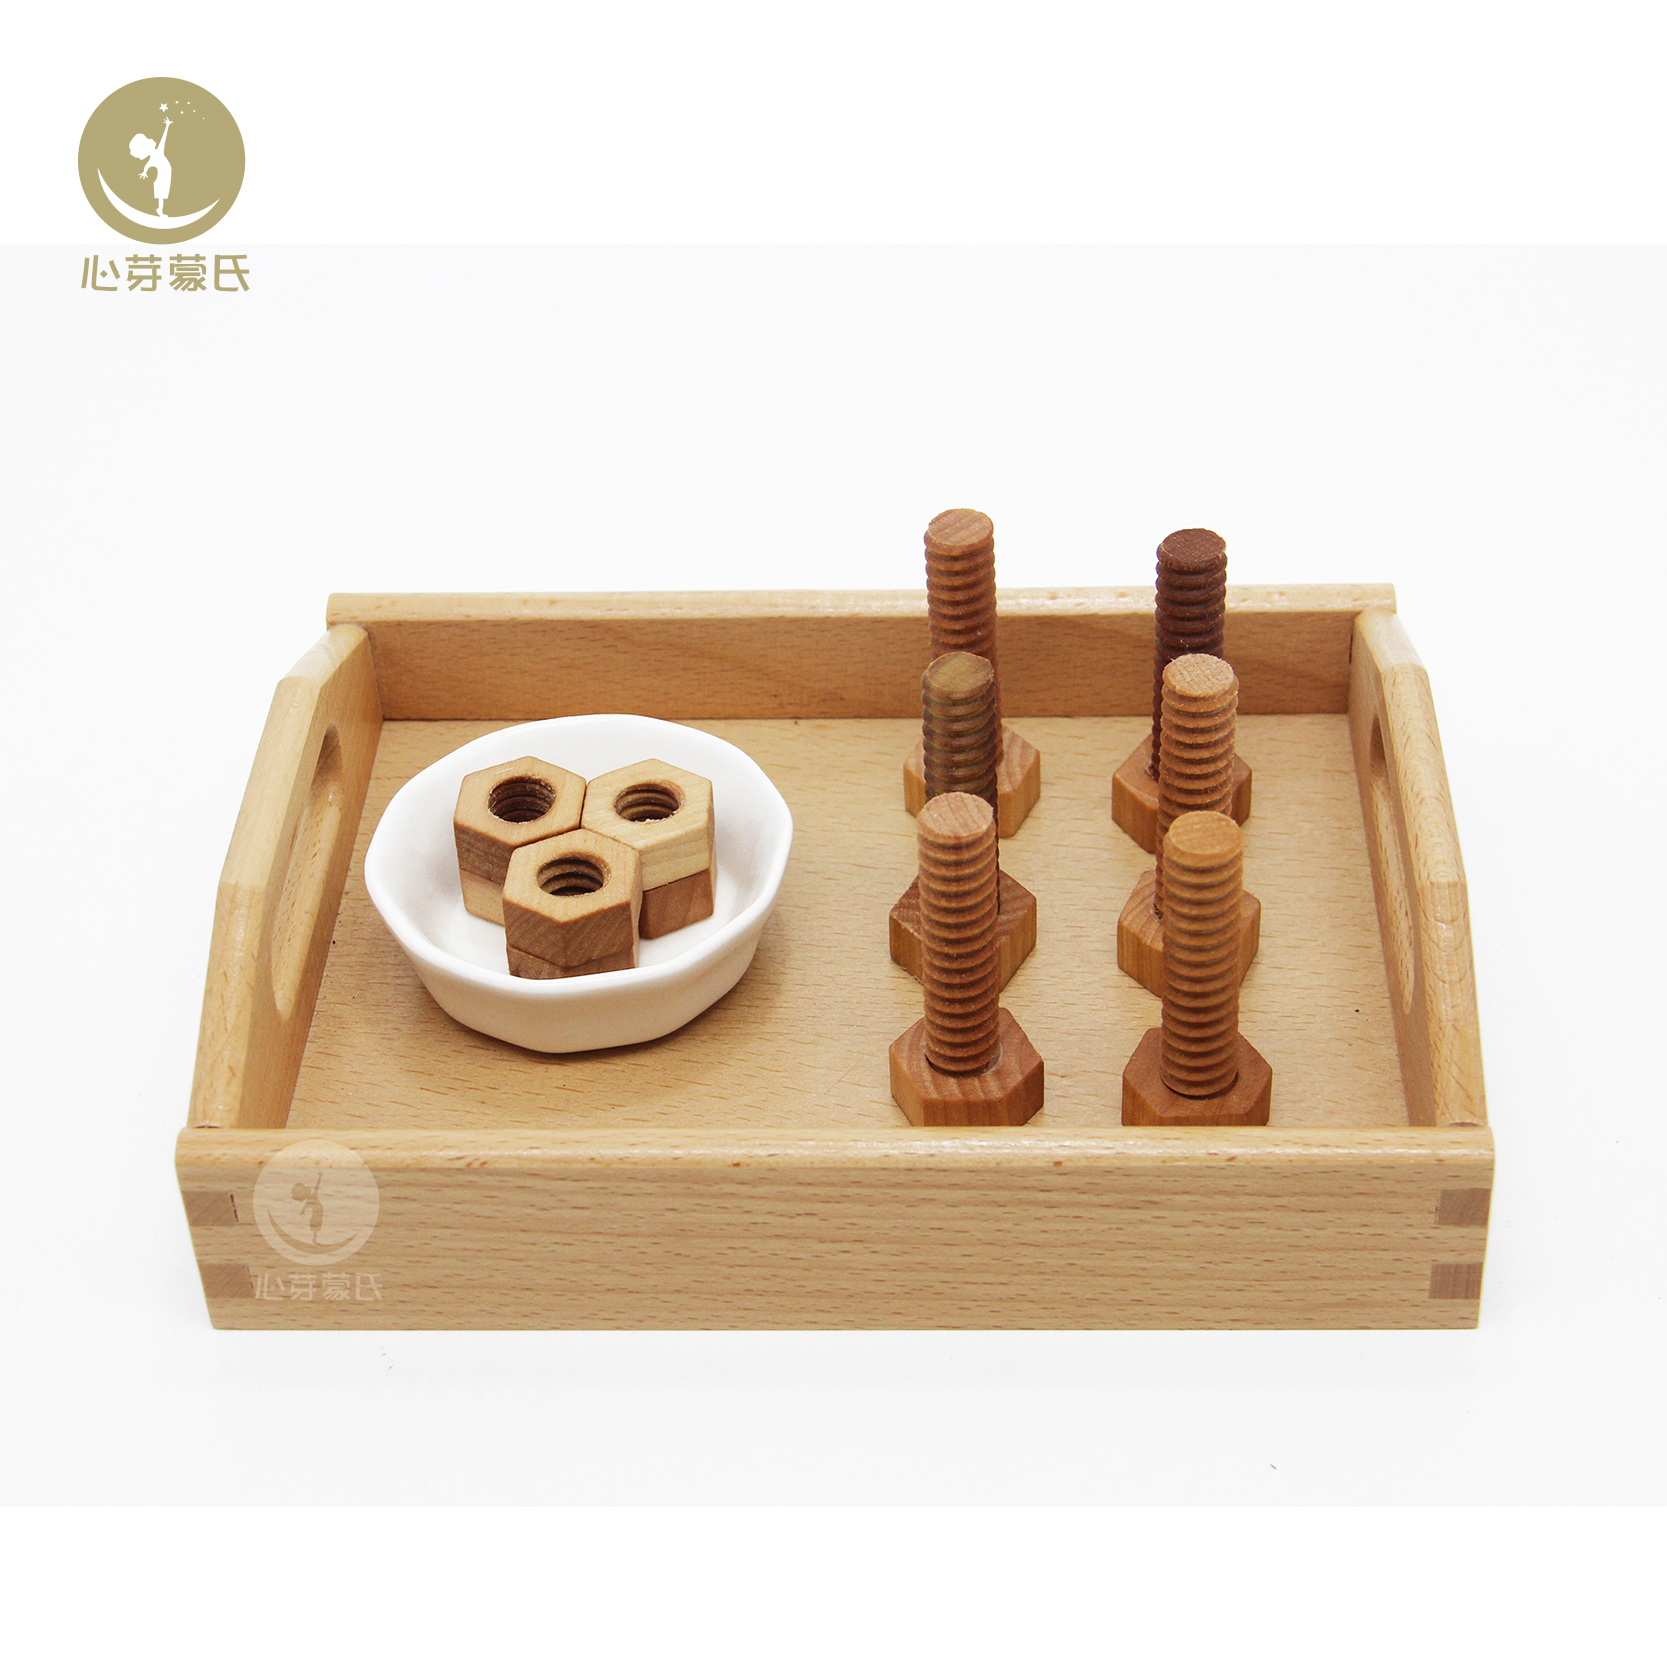 Montessori Wooden Toys Box Early Learning Toys Hand-eye Coordination Sensory Toys Screw/unload Screw Teaching Aids Gift For Kids